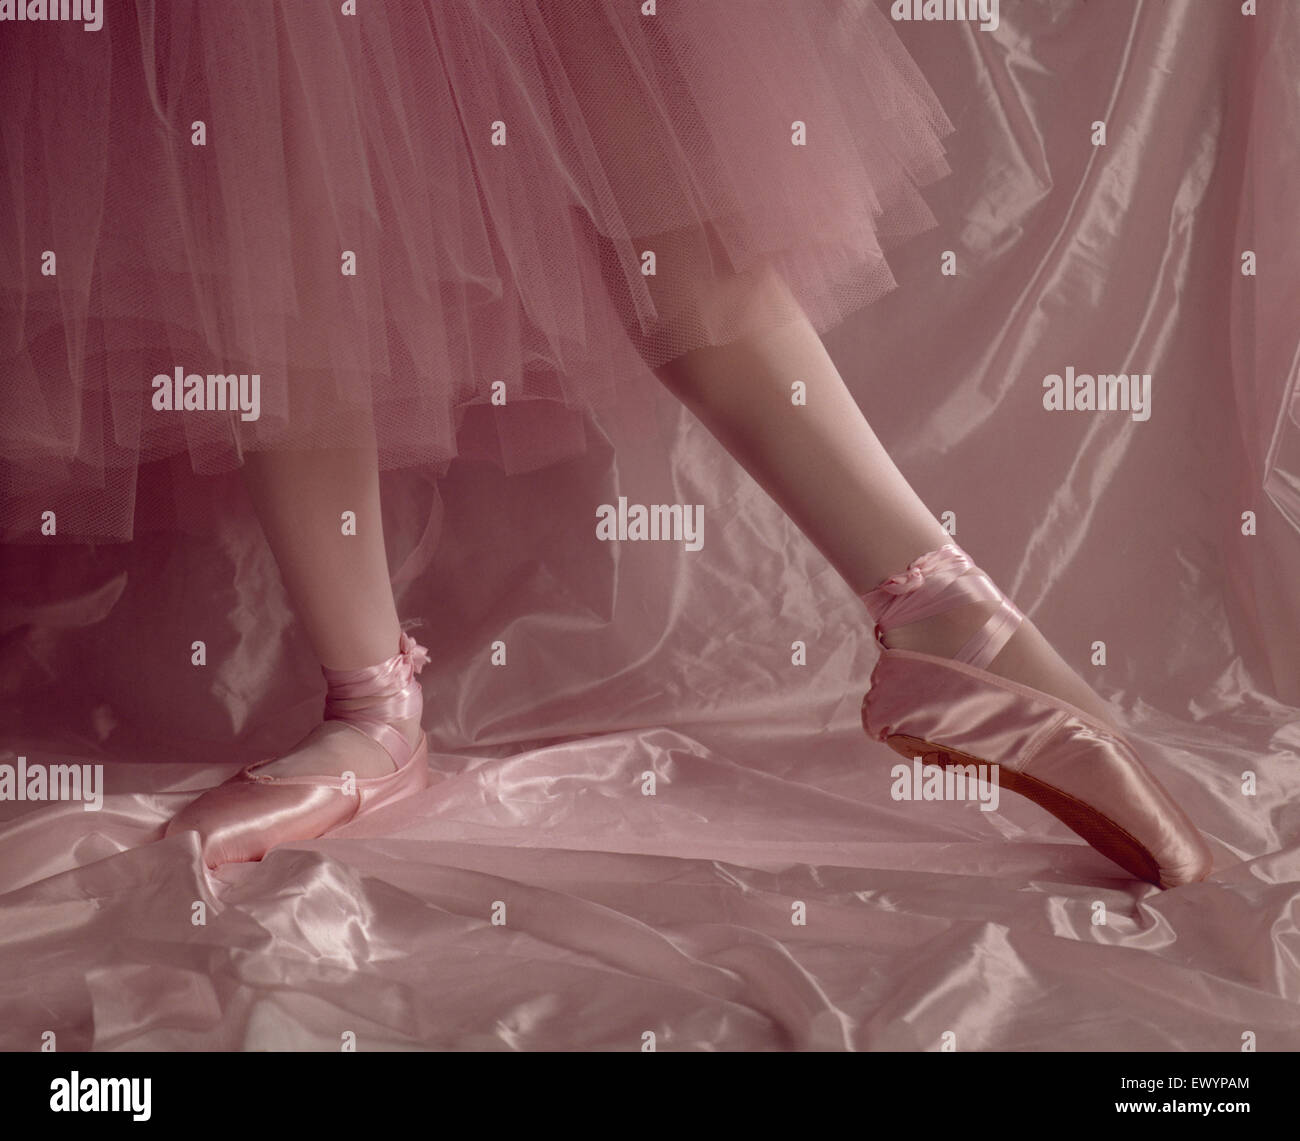 Legs of a ballet dancer, wearing toe shoes, in pink tights and tutu, on a pink background. - Stock Image